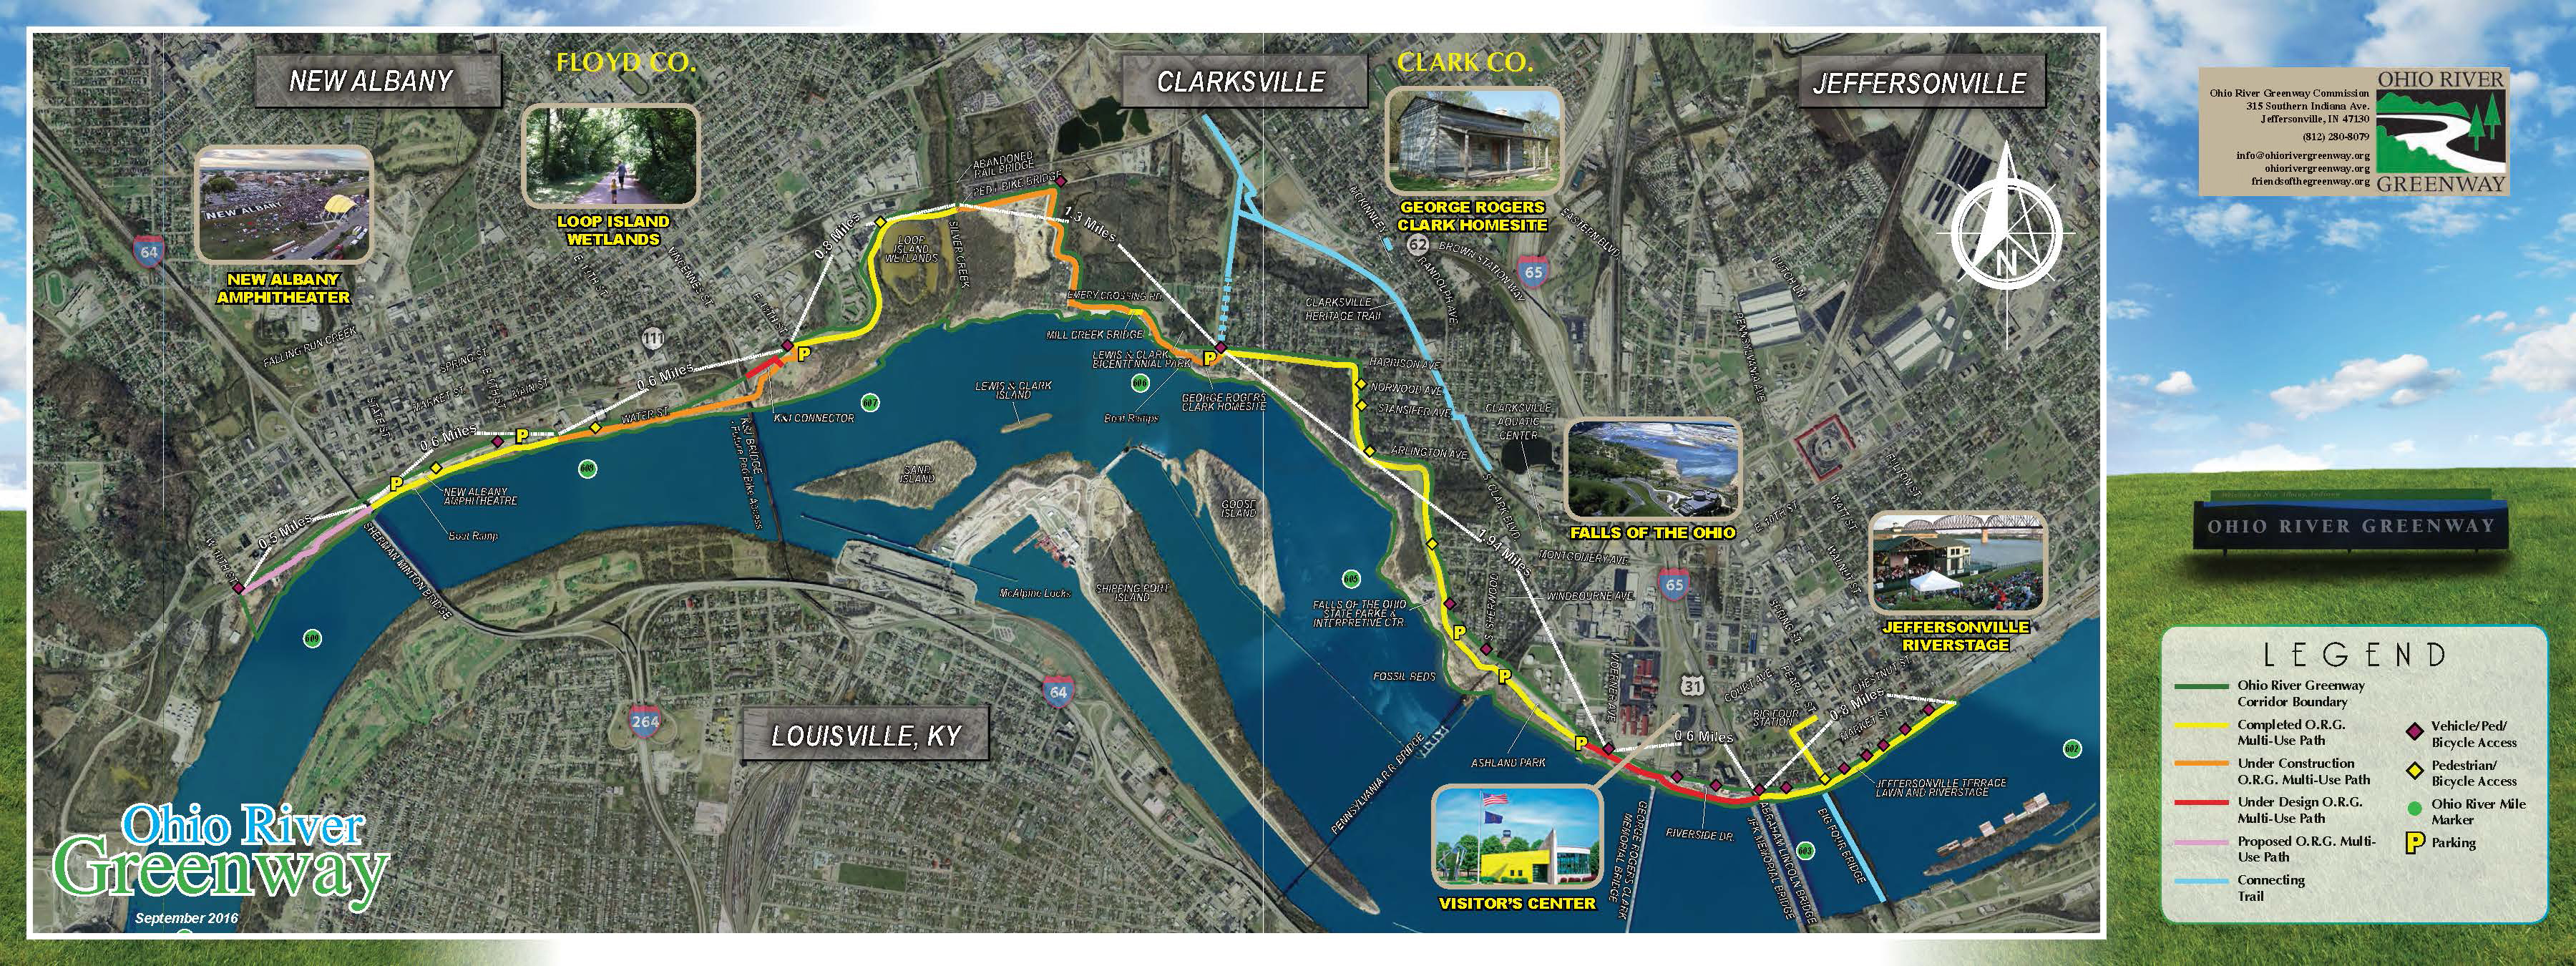 Falls Of The Ohio Map.Greenway Ohio River Greenway Jeffersonville Clarksville New